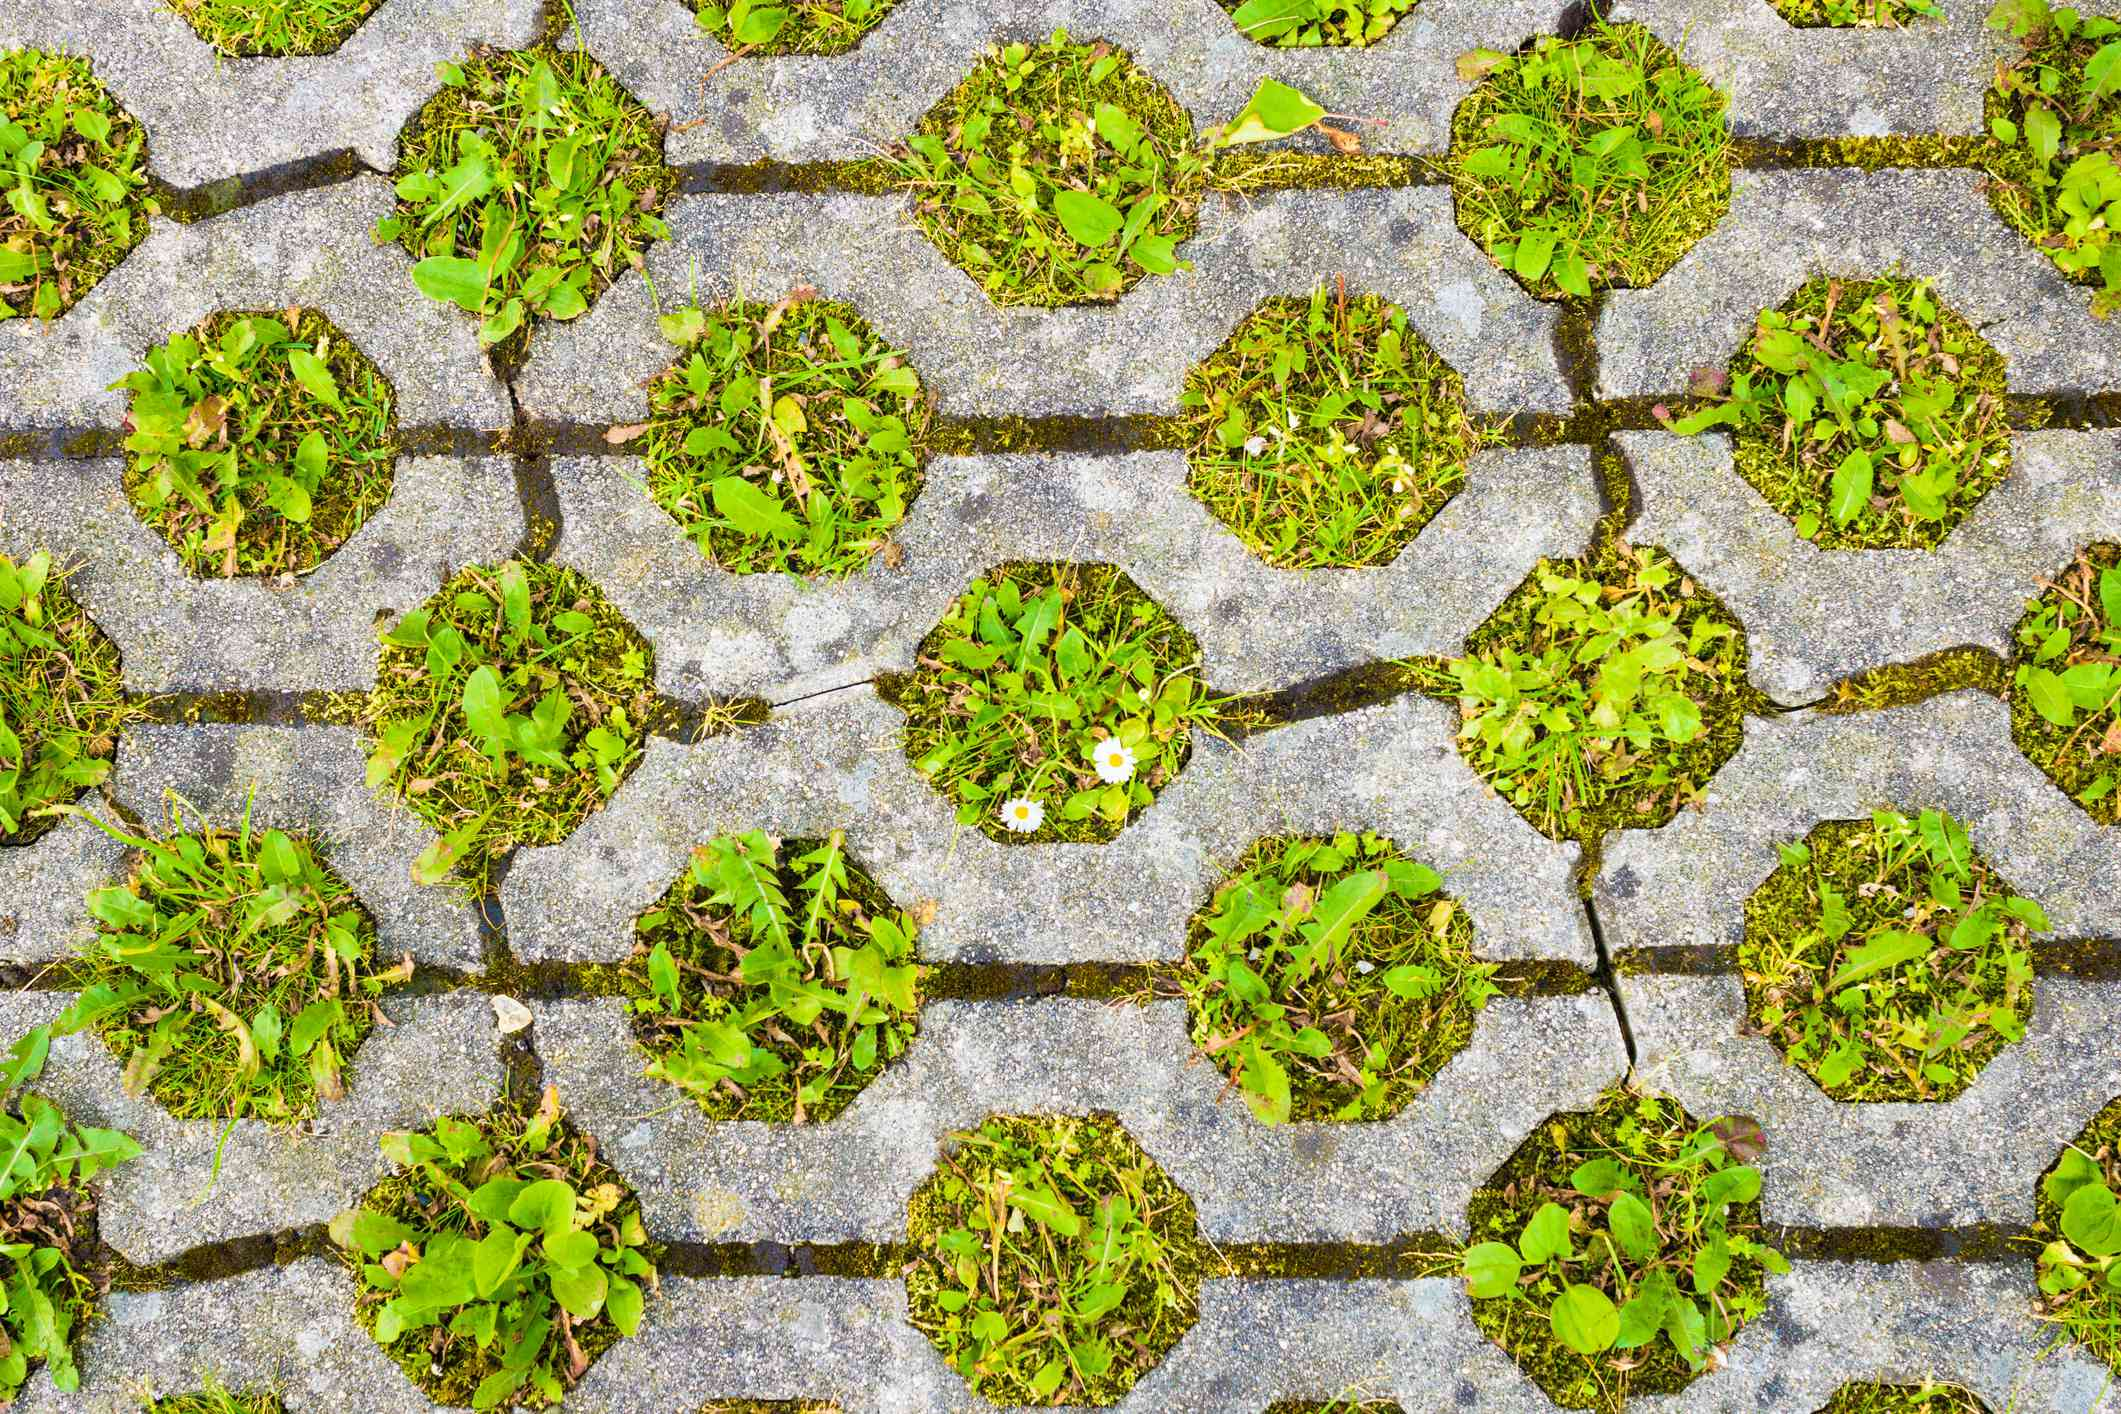 Permeable pavement with grass. Eco friendly parking